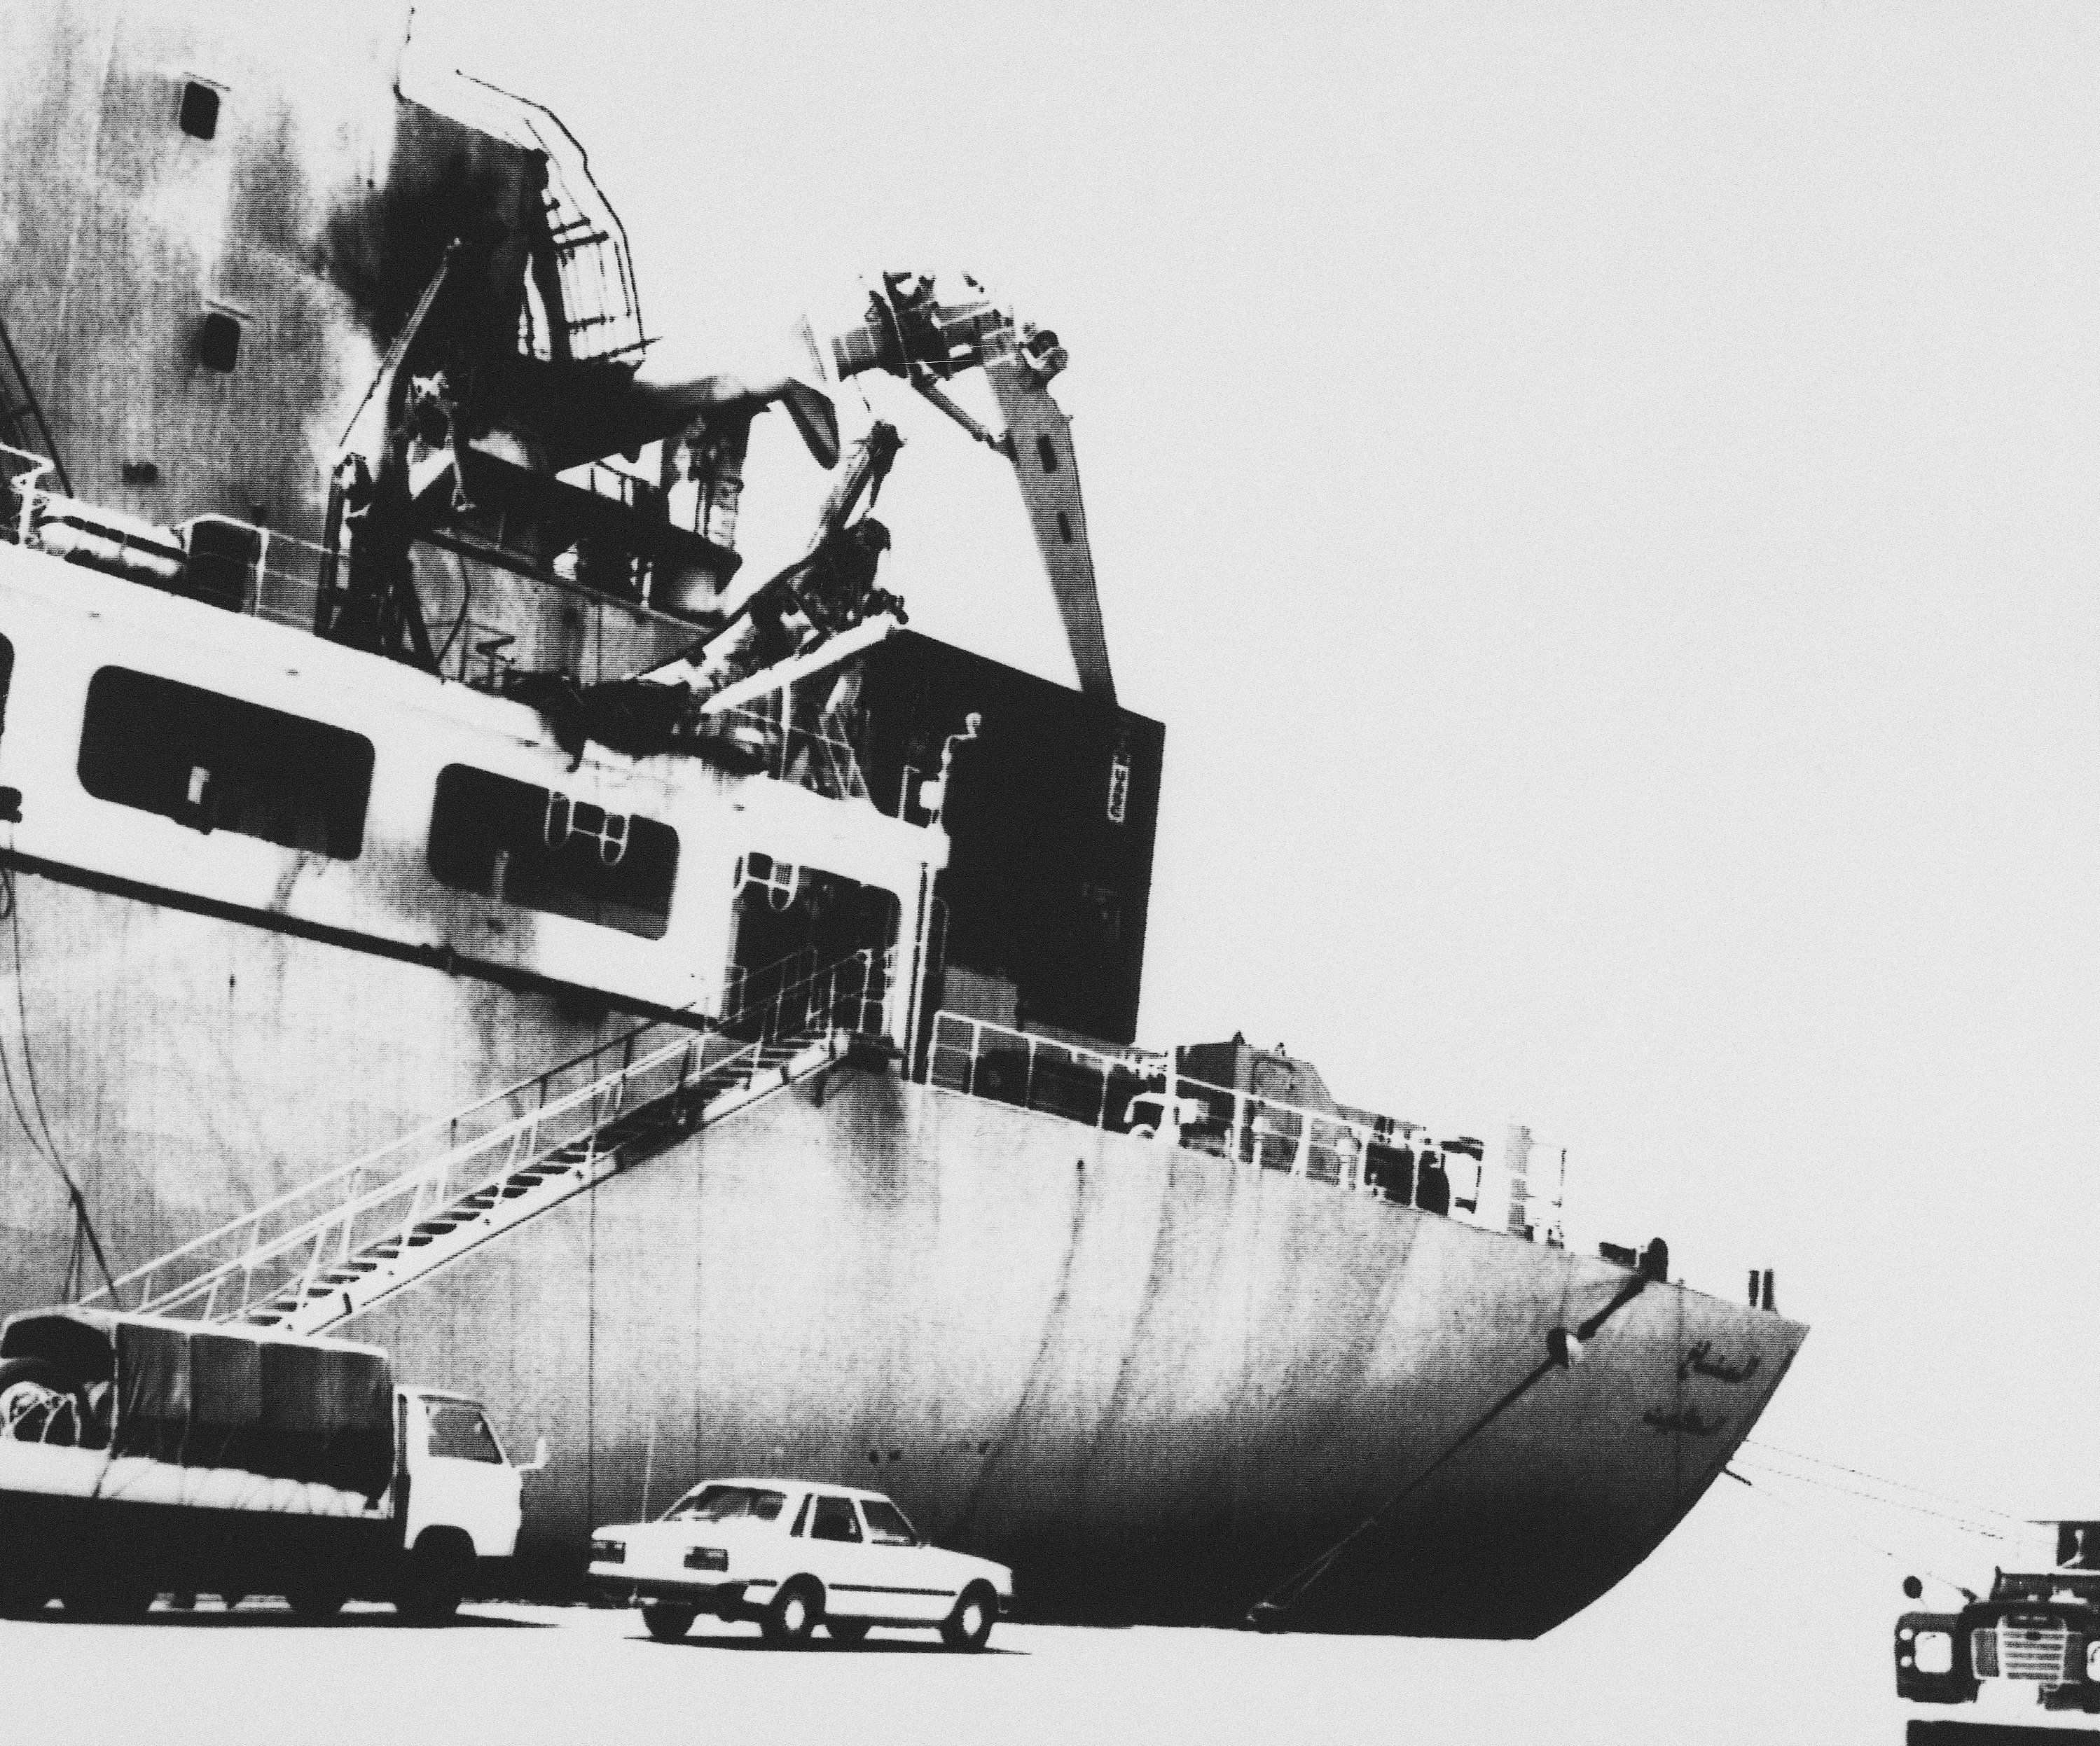 View of the soot-covers Kuwaiti registered countainer ship Al-Manakh at the Dubai port on Feb. 19, 1985 where it will be repaired. The vessel was damaged in an Iran air attack in the gulf waters Monday.